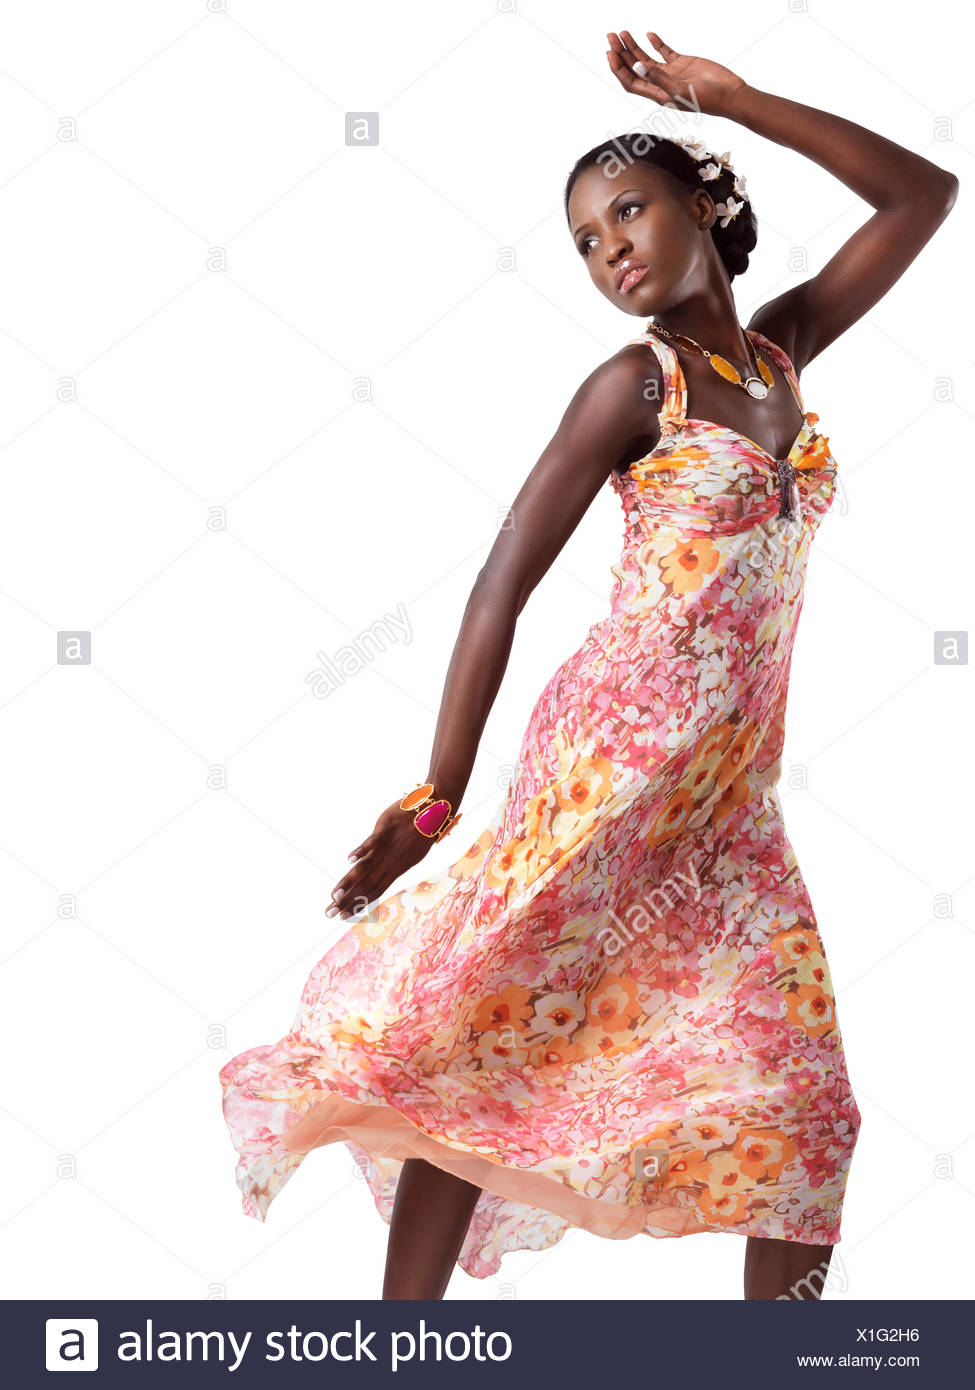 445ff3c6bd9df Beautiful young black woman dancing in a pink floral summer dress isolated  on white background